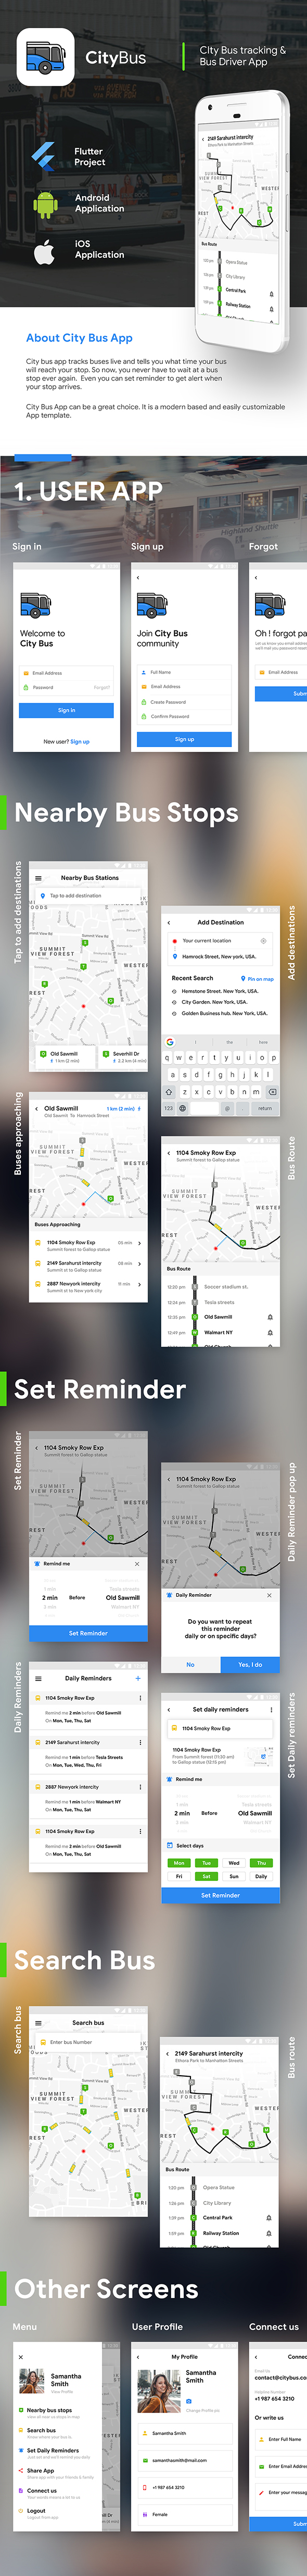 City Bus Tracking Android App Template & iOS App Template | Driver + Passenger | Flutter - 3